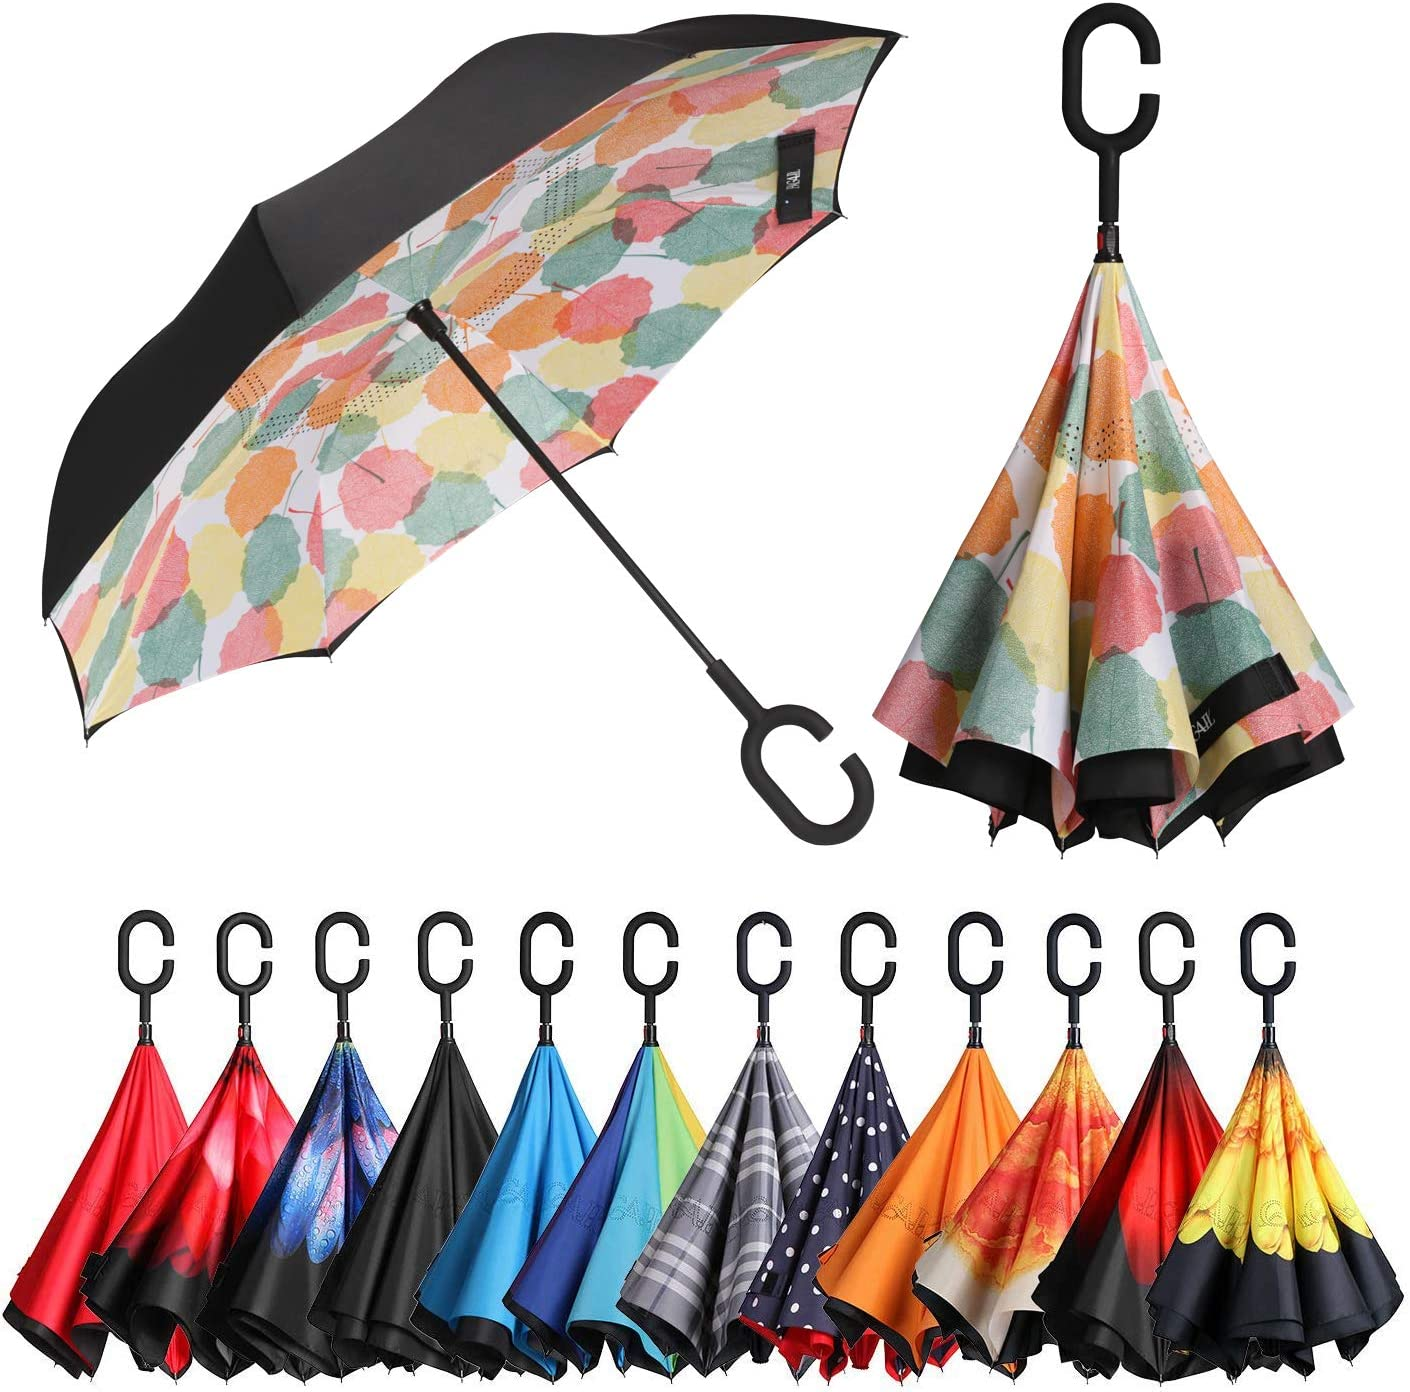 BAGAIL Double Layer Inverted Umbrellas Reverse Folding Umbrella Windproof UV Protection Big Straight Umbrella for Car Rain Outdoor with C-Shaped Handle Beige Plaid